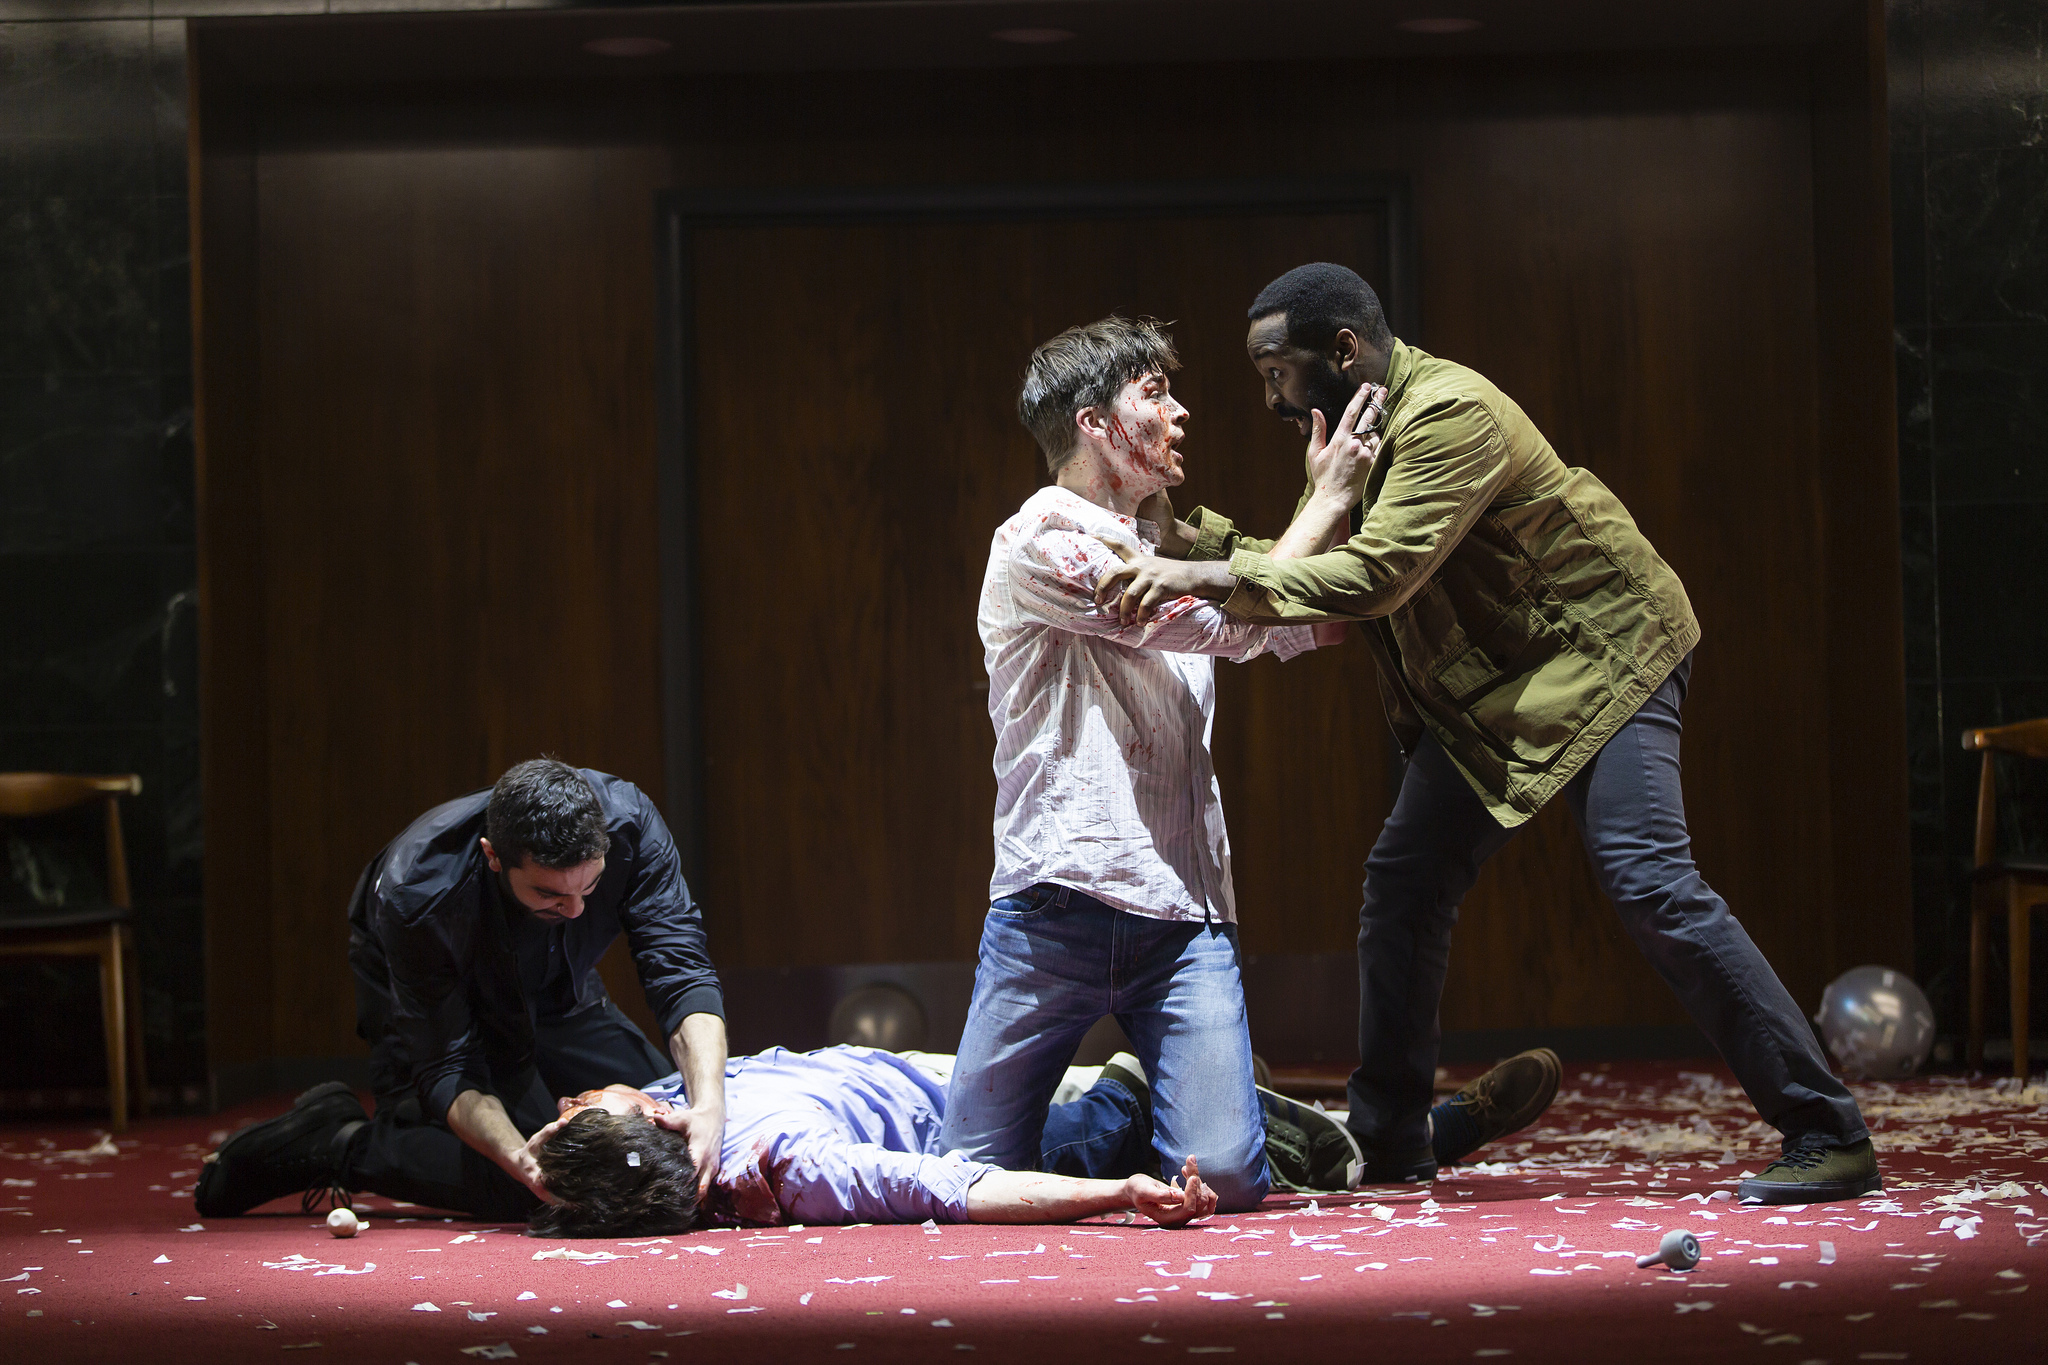 Company of Romeo and Juliet ROMEO AND JULIET Huntington Theatre Company Avenue of the Arts / Huntington Avenue Theatre March 1 - 31, 2019 Photo: T. Charles Erickson